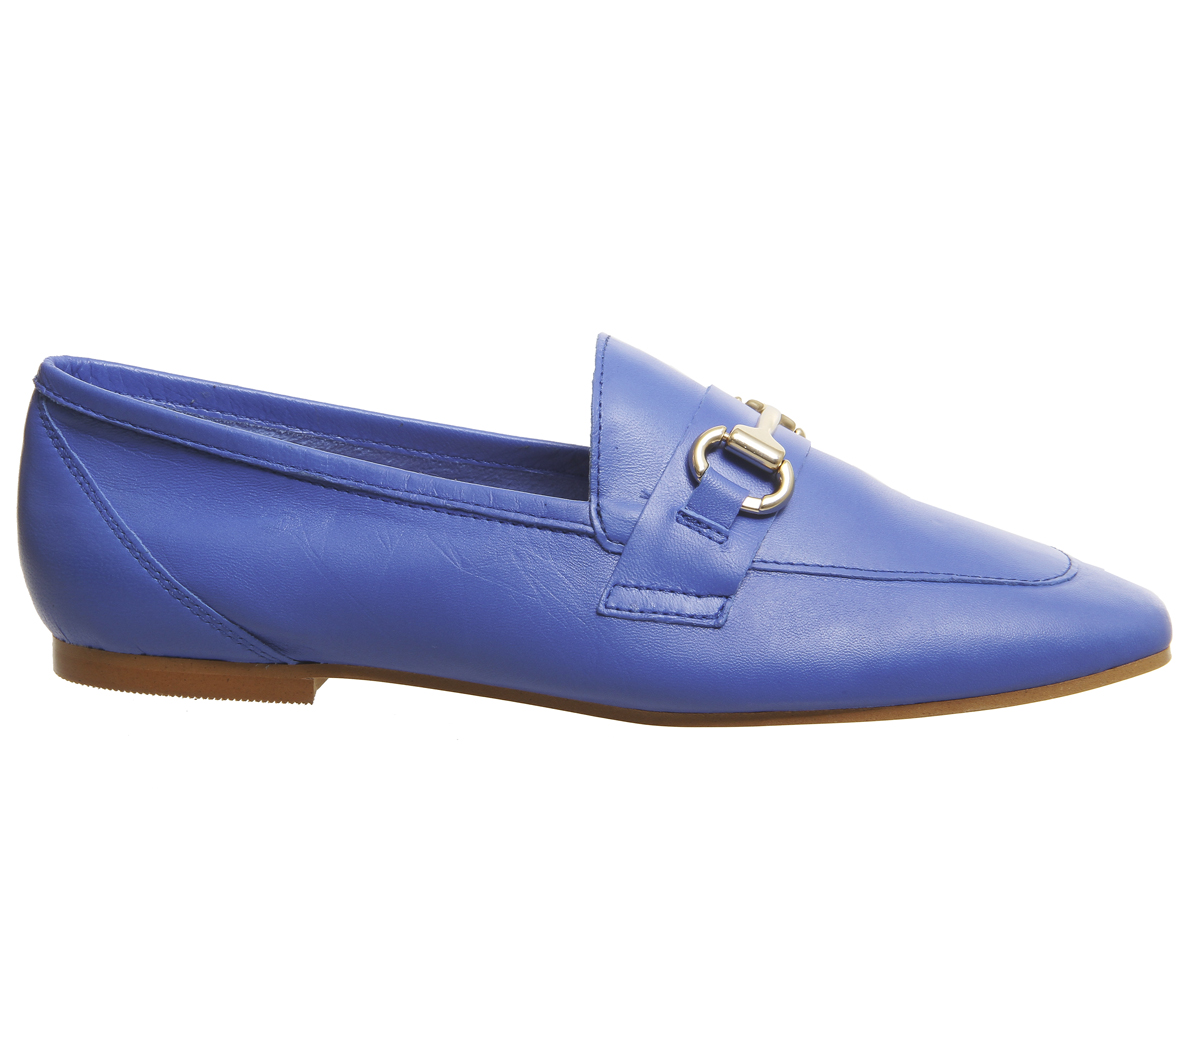 Destiny Loafers Trim Leather Blue Flats Office Womens Ozq4UnSz